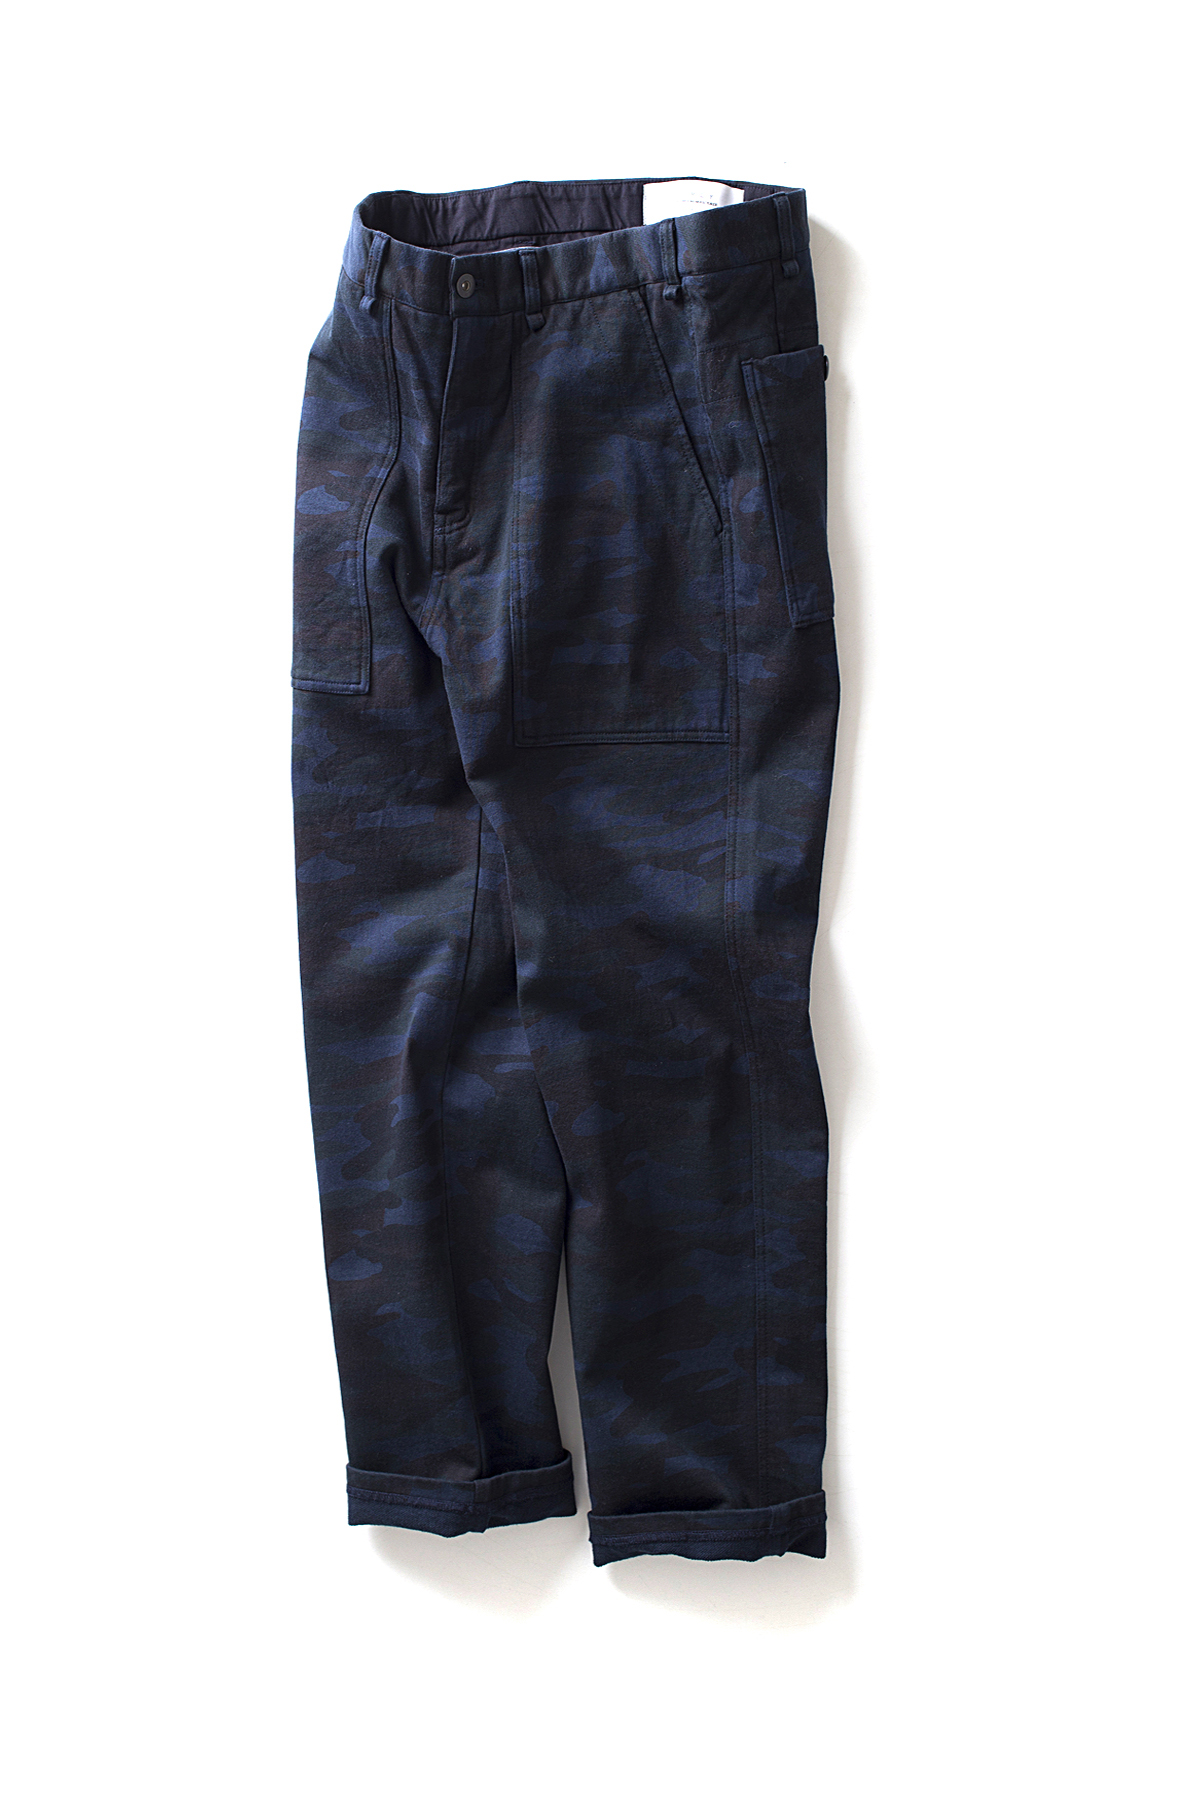 Curly : Camo Fatigue Trousers (Navy Camo)